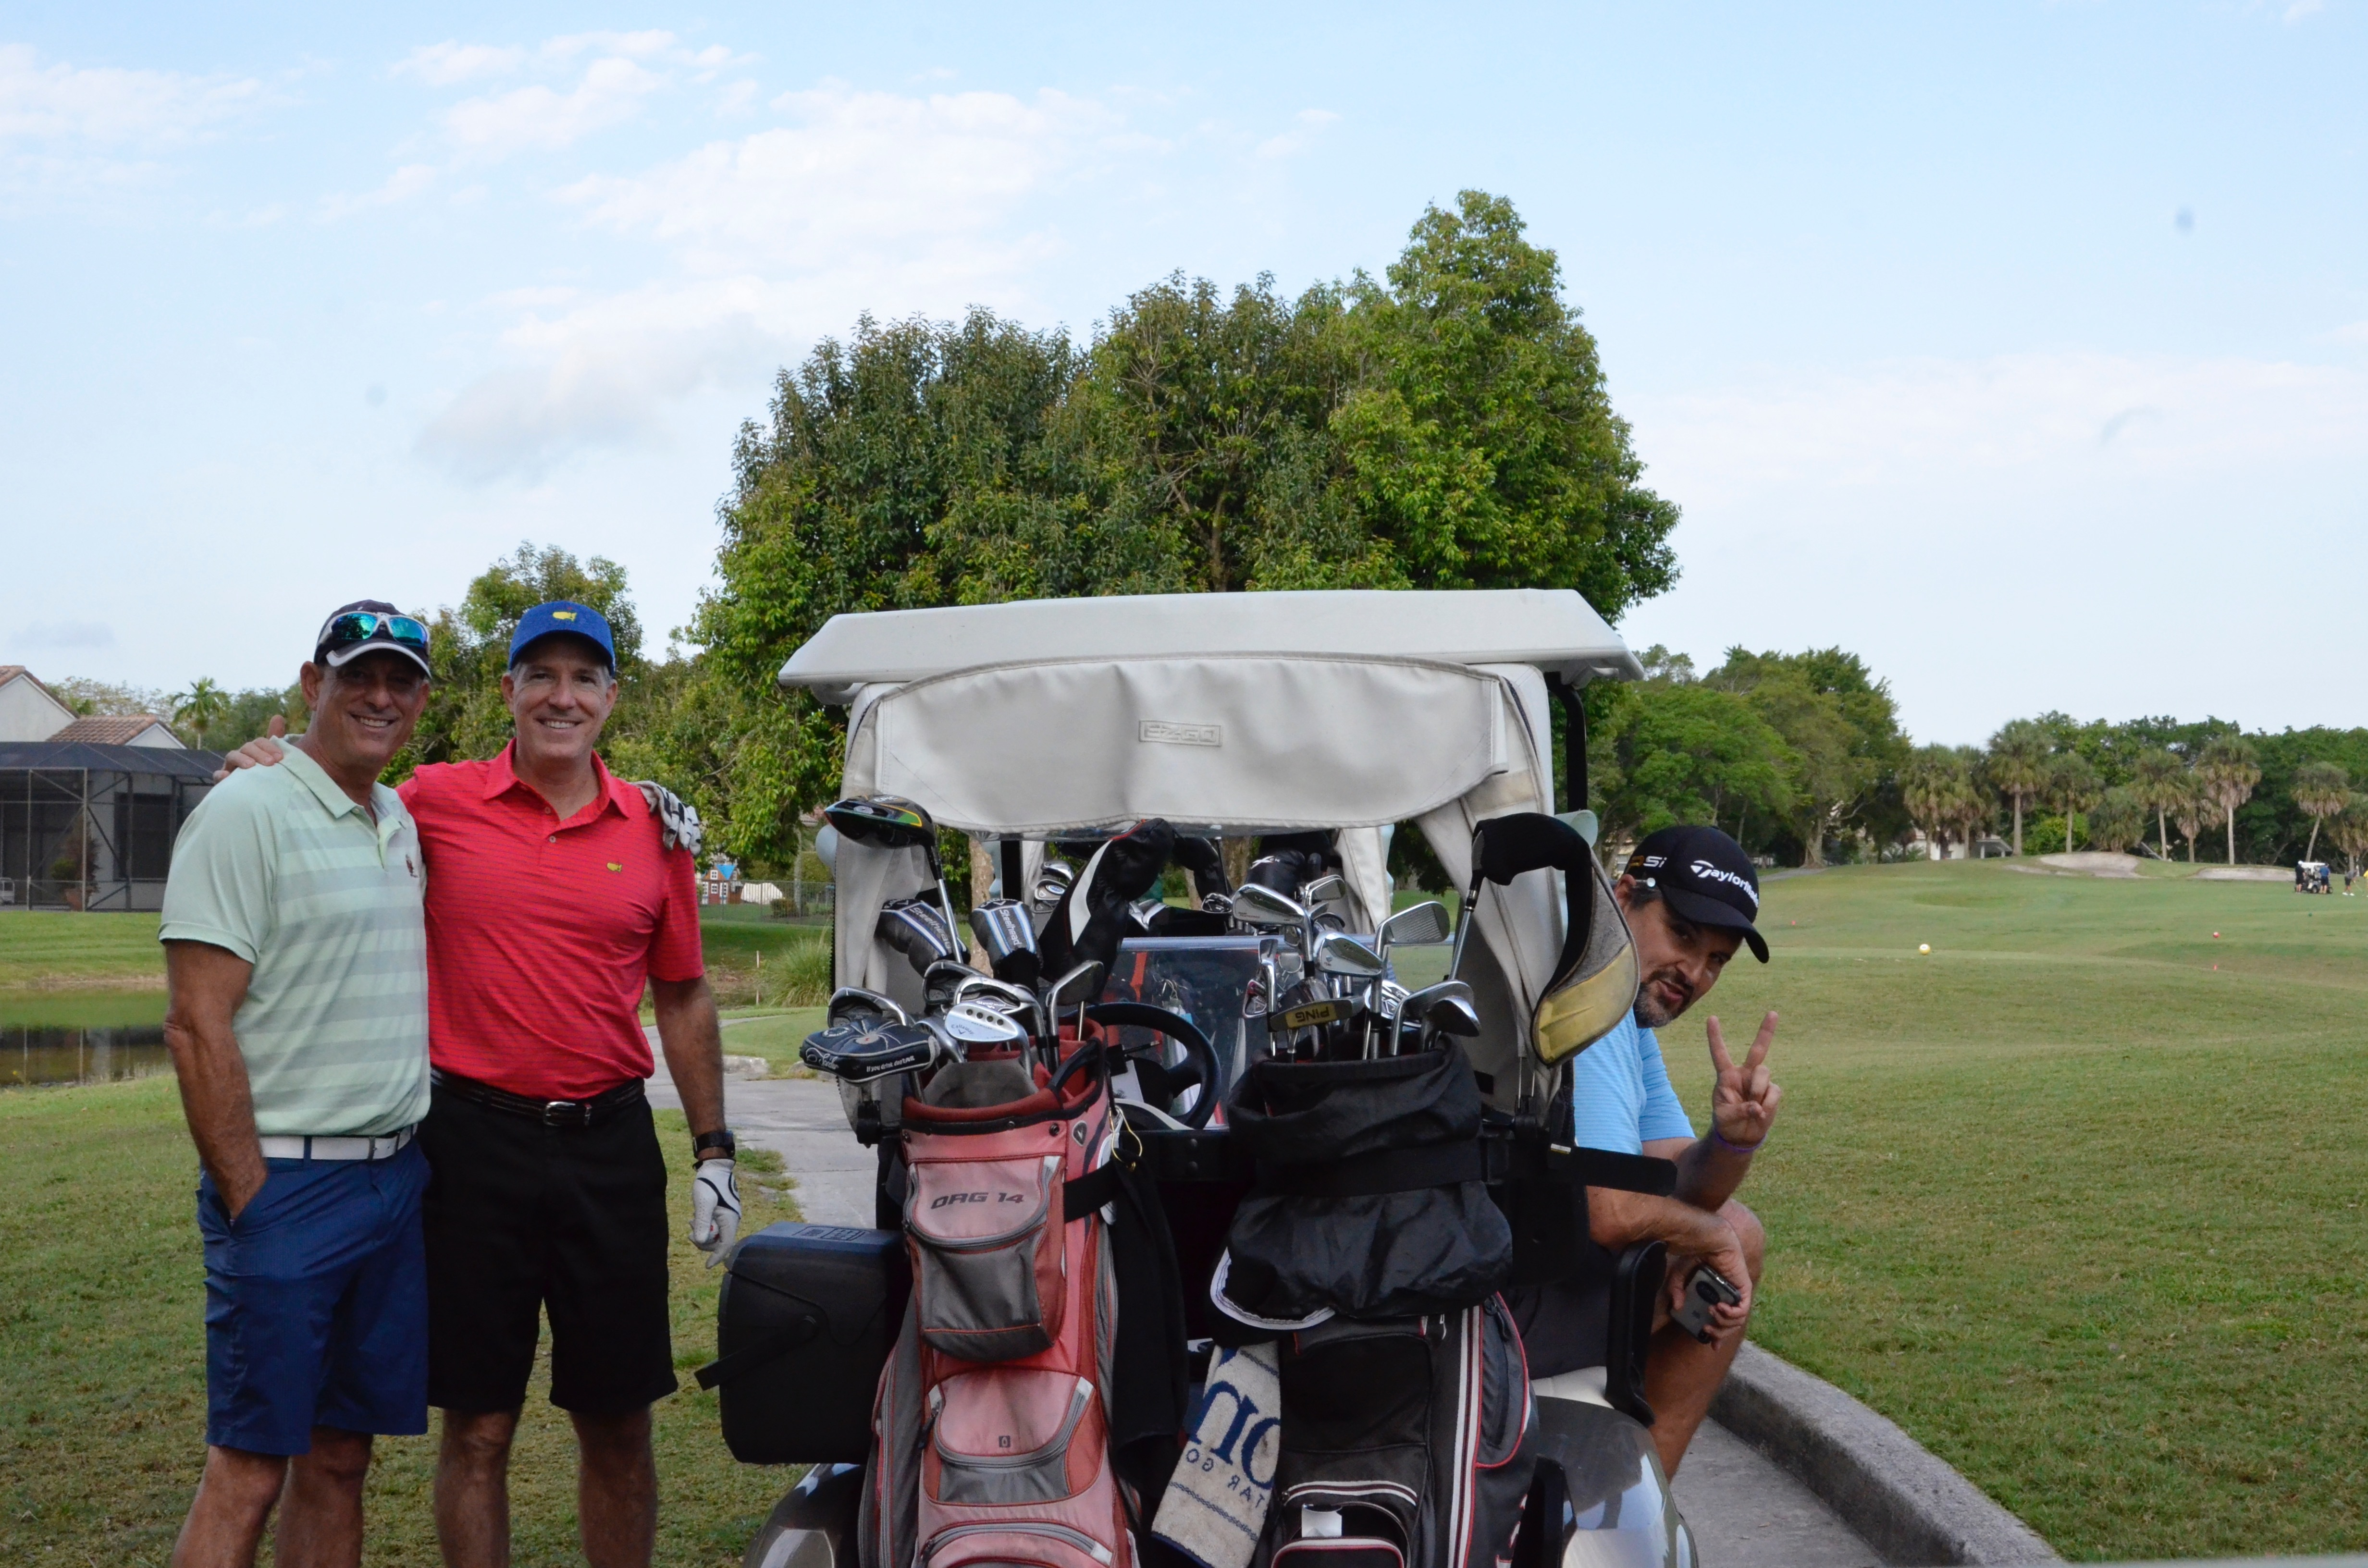 33rd Annual Rotary Golf Classic Sponsored by FHVLEGAL.COM gallery image #54